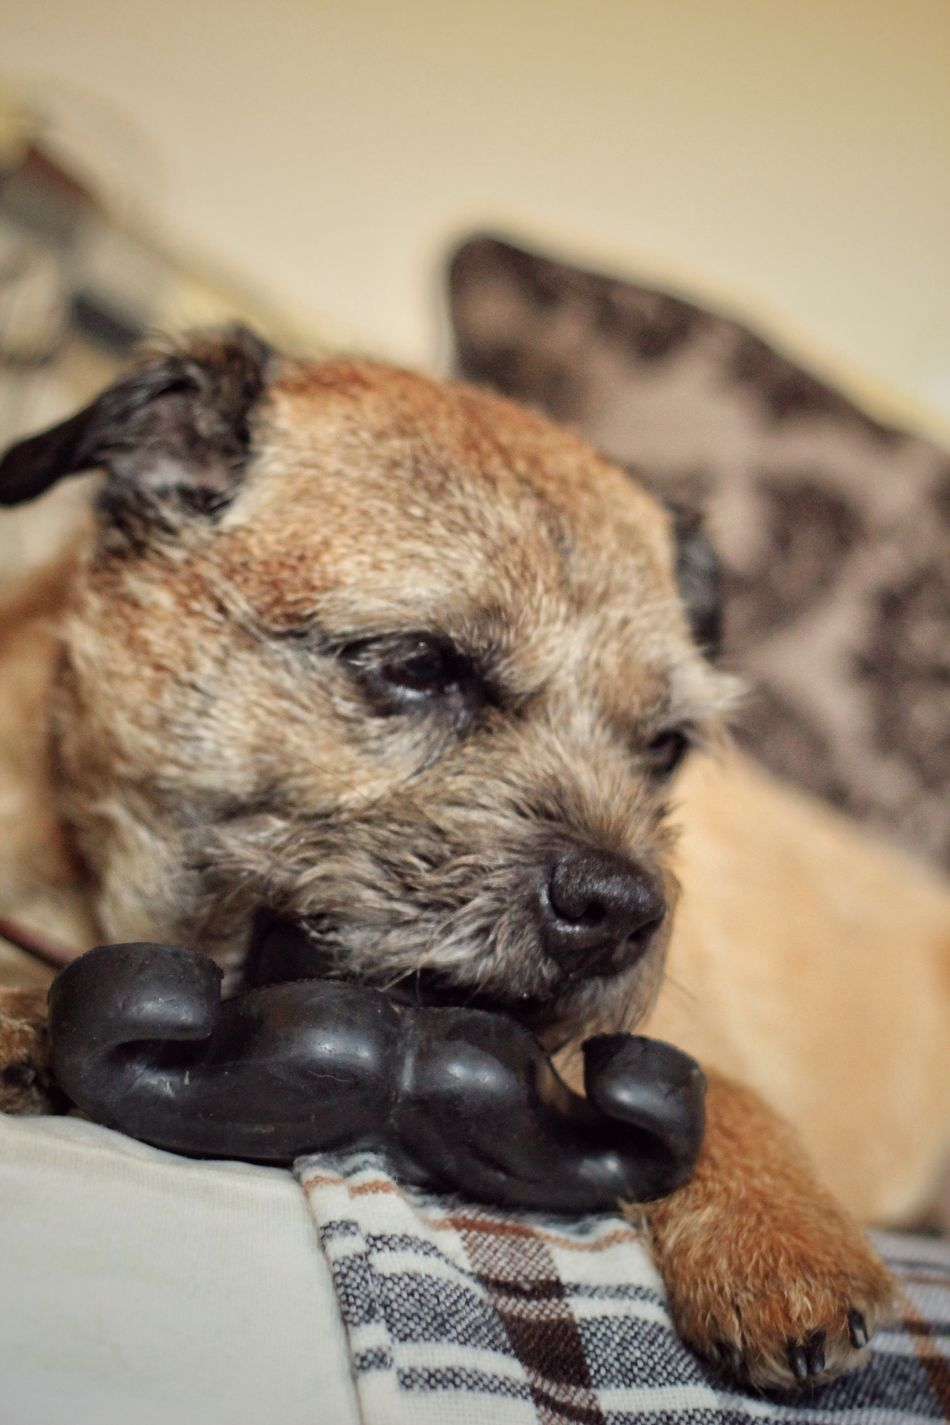 Dog Pets One Animal Domestic Animals Mammal Animal Themes Indoors  Relaxation Lying Down Home Interior No People Dog Love Dog❤ Dog Photography Dogs Of EyeEm Pet Photography  Canon Dogs Boarder Boarderterrier Terrier Leeds, UK Close-up Day